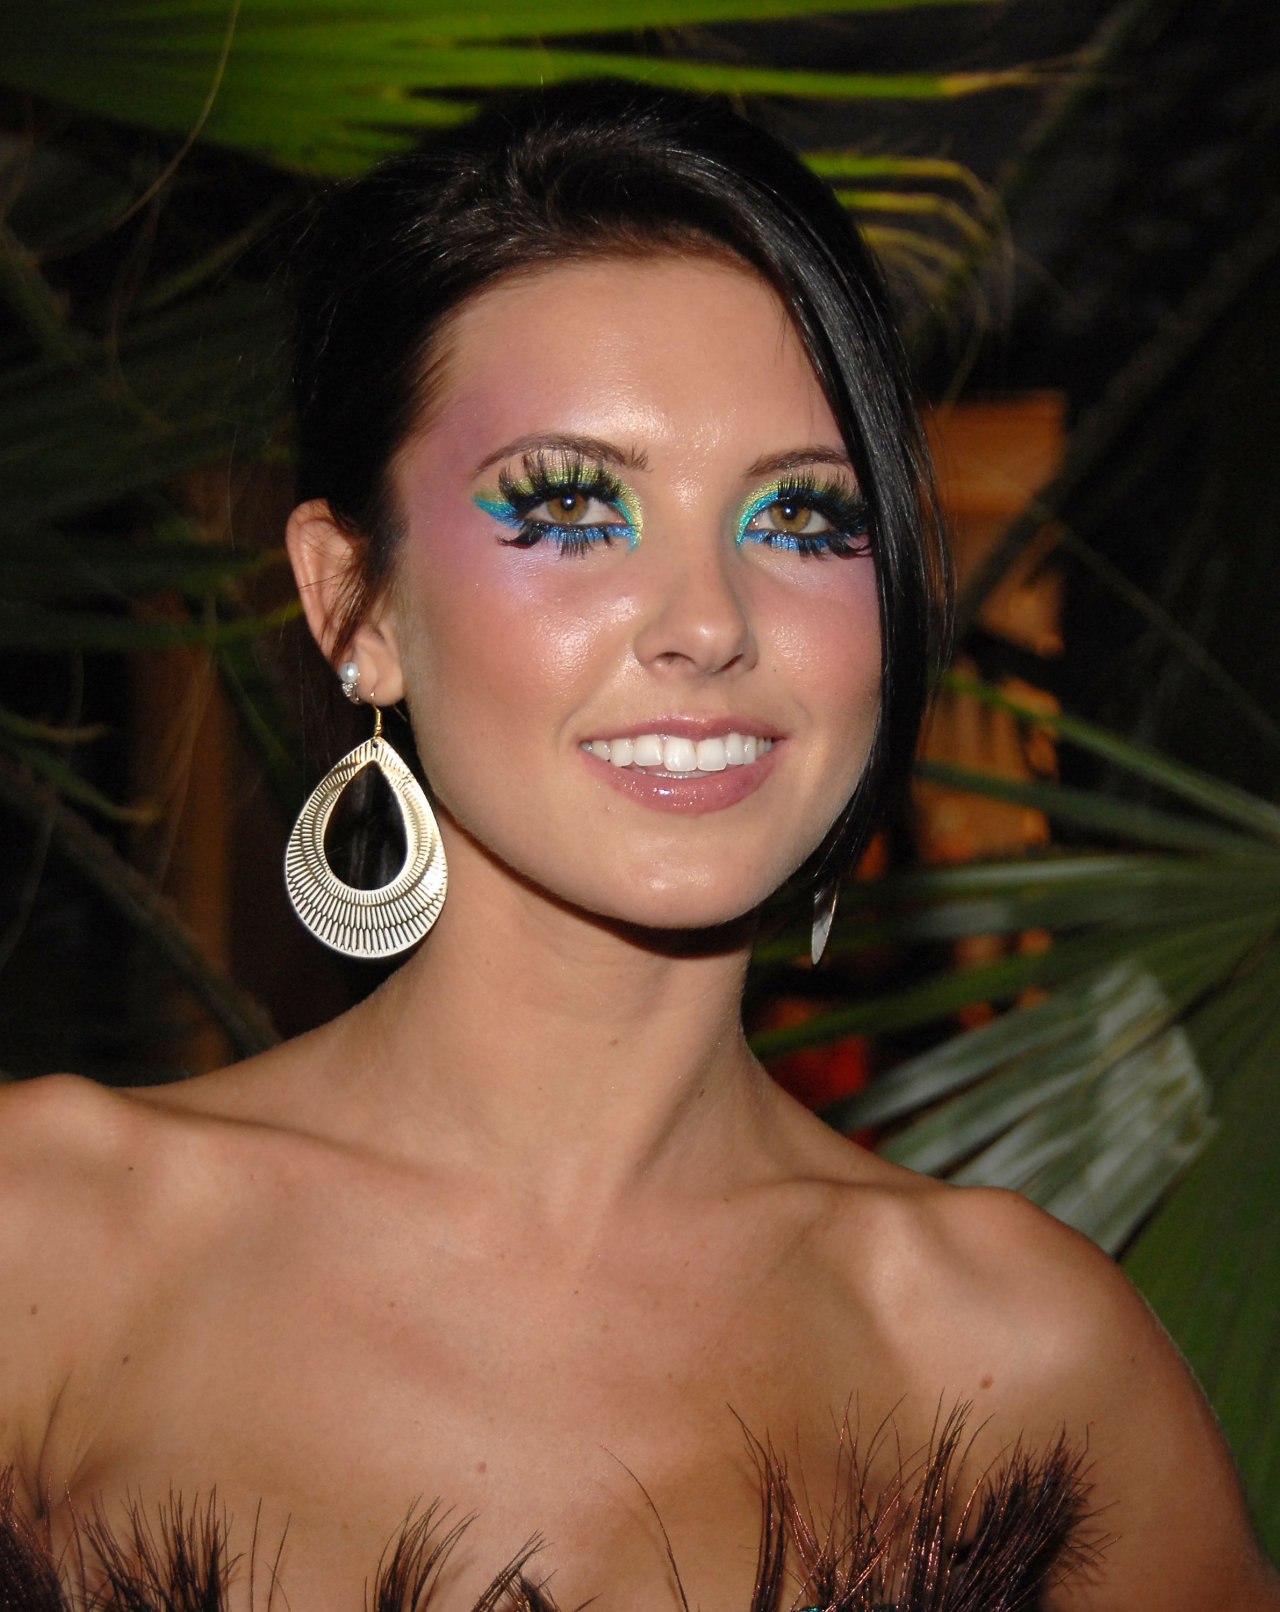 Audrina Patridge - New Photos